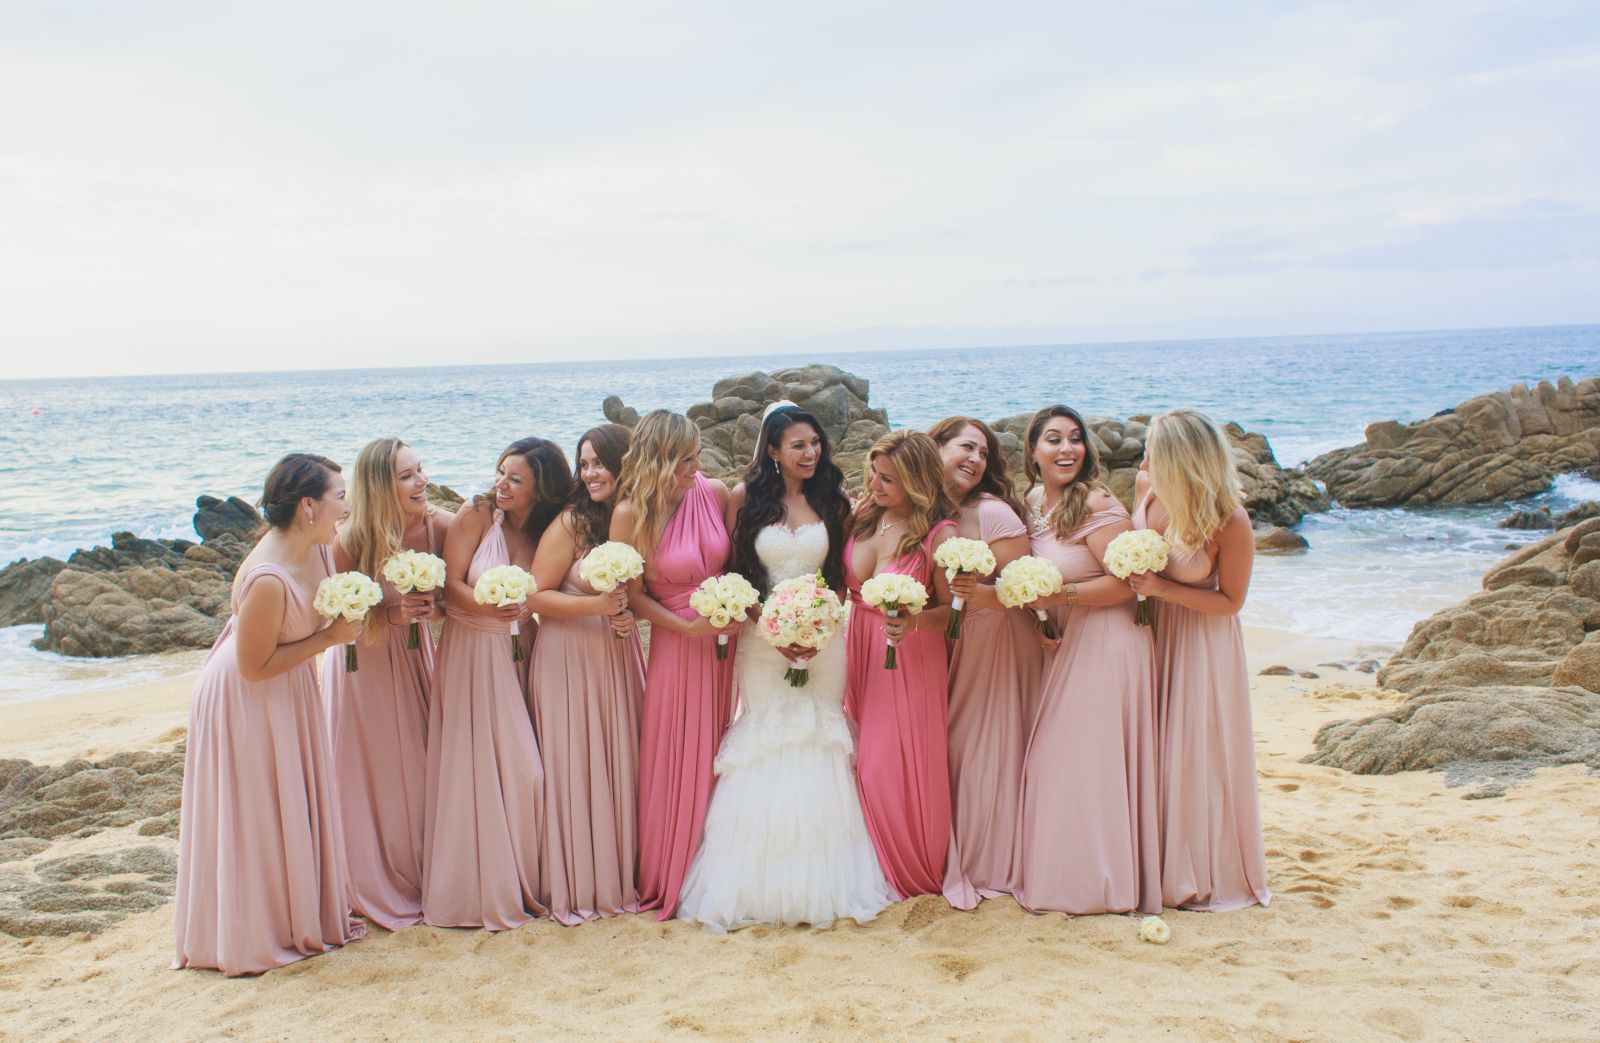 Bridesmaids dresses and some more details